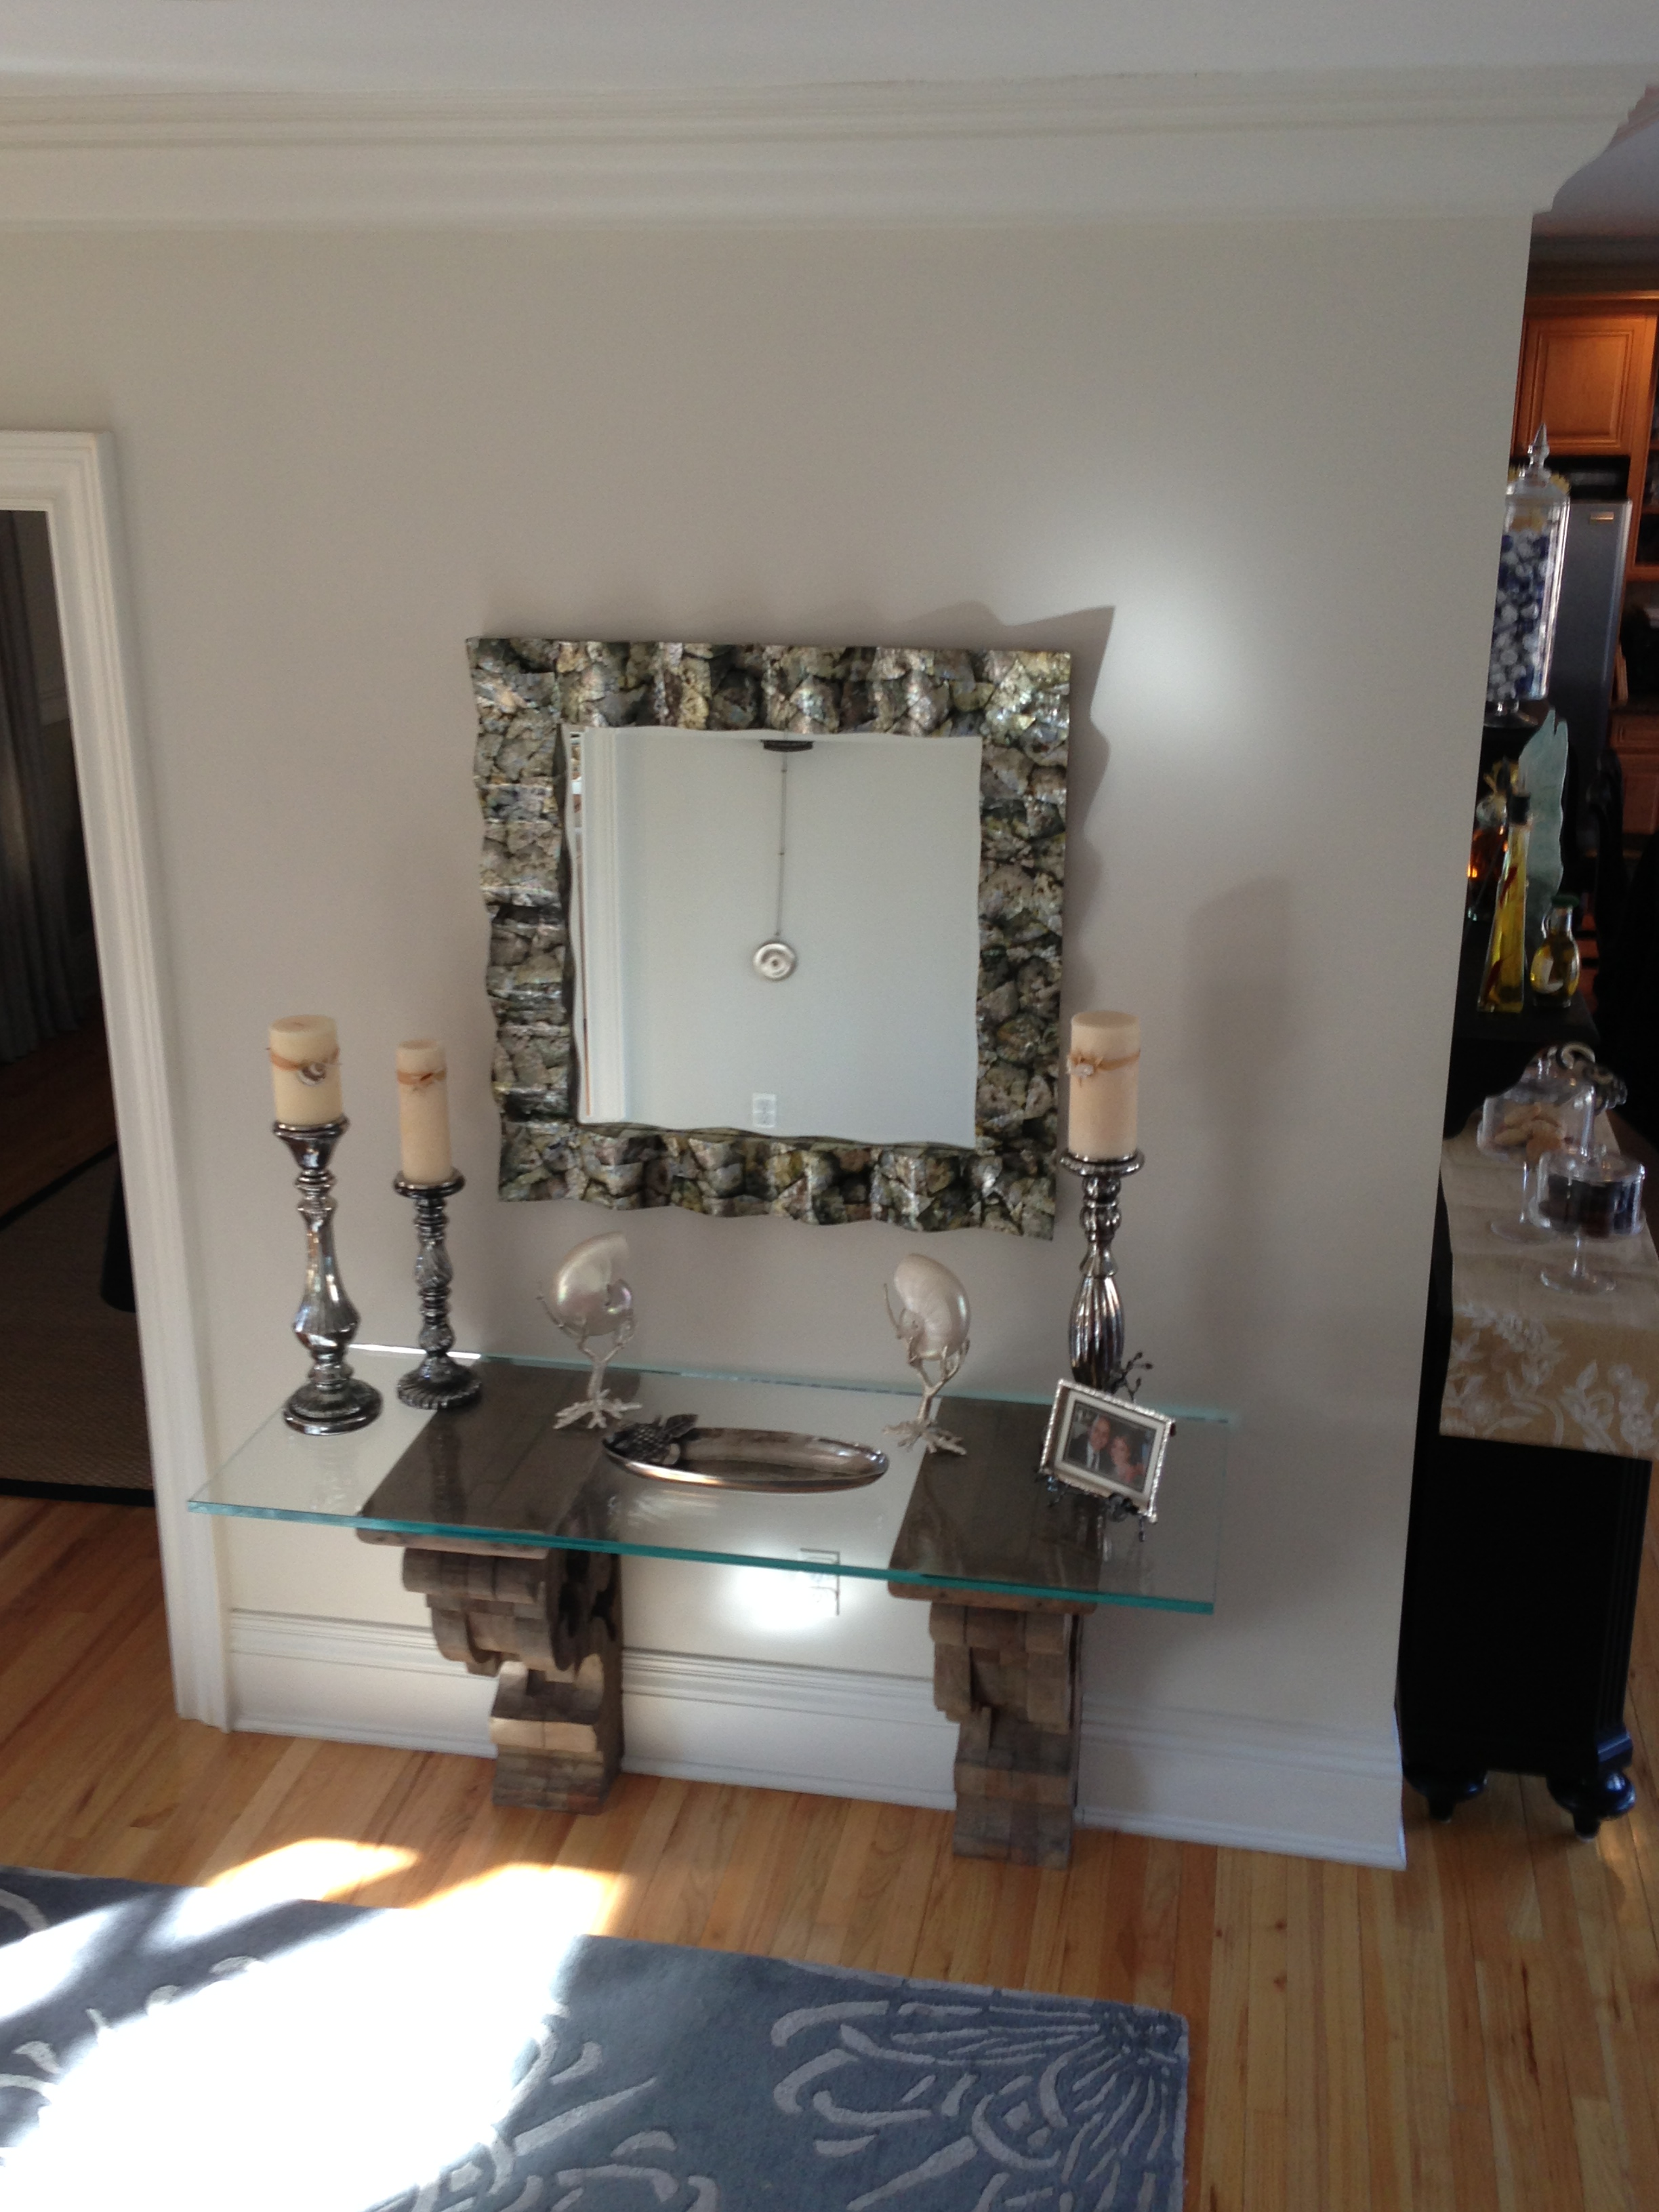 Glass table with decorations on top and mirror on the wall